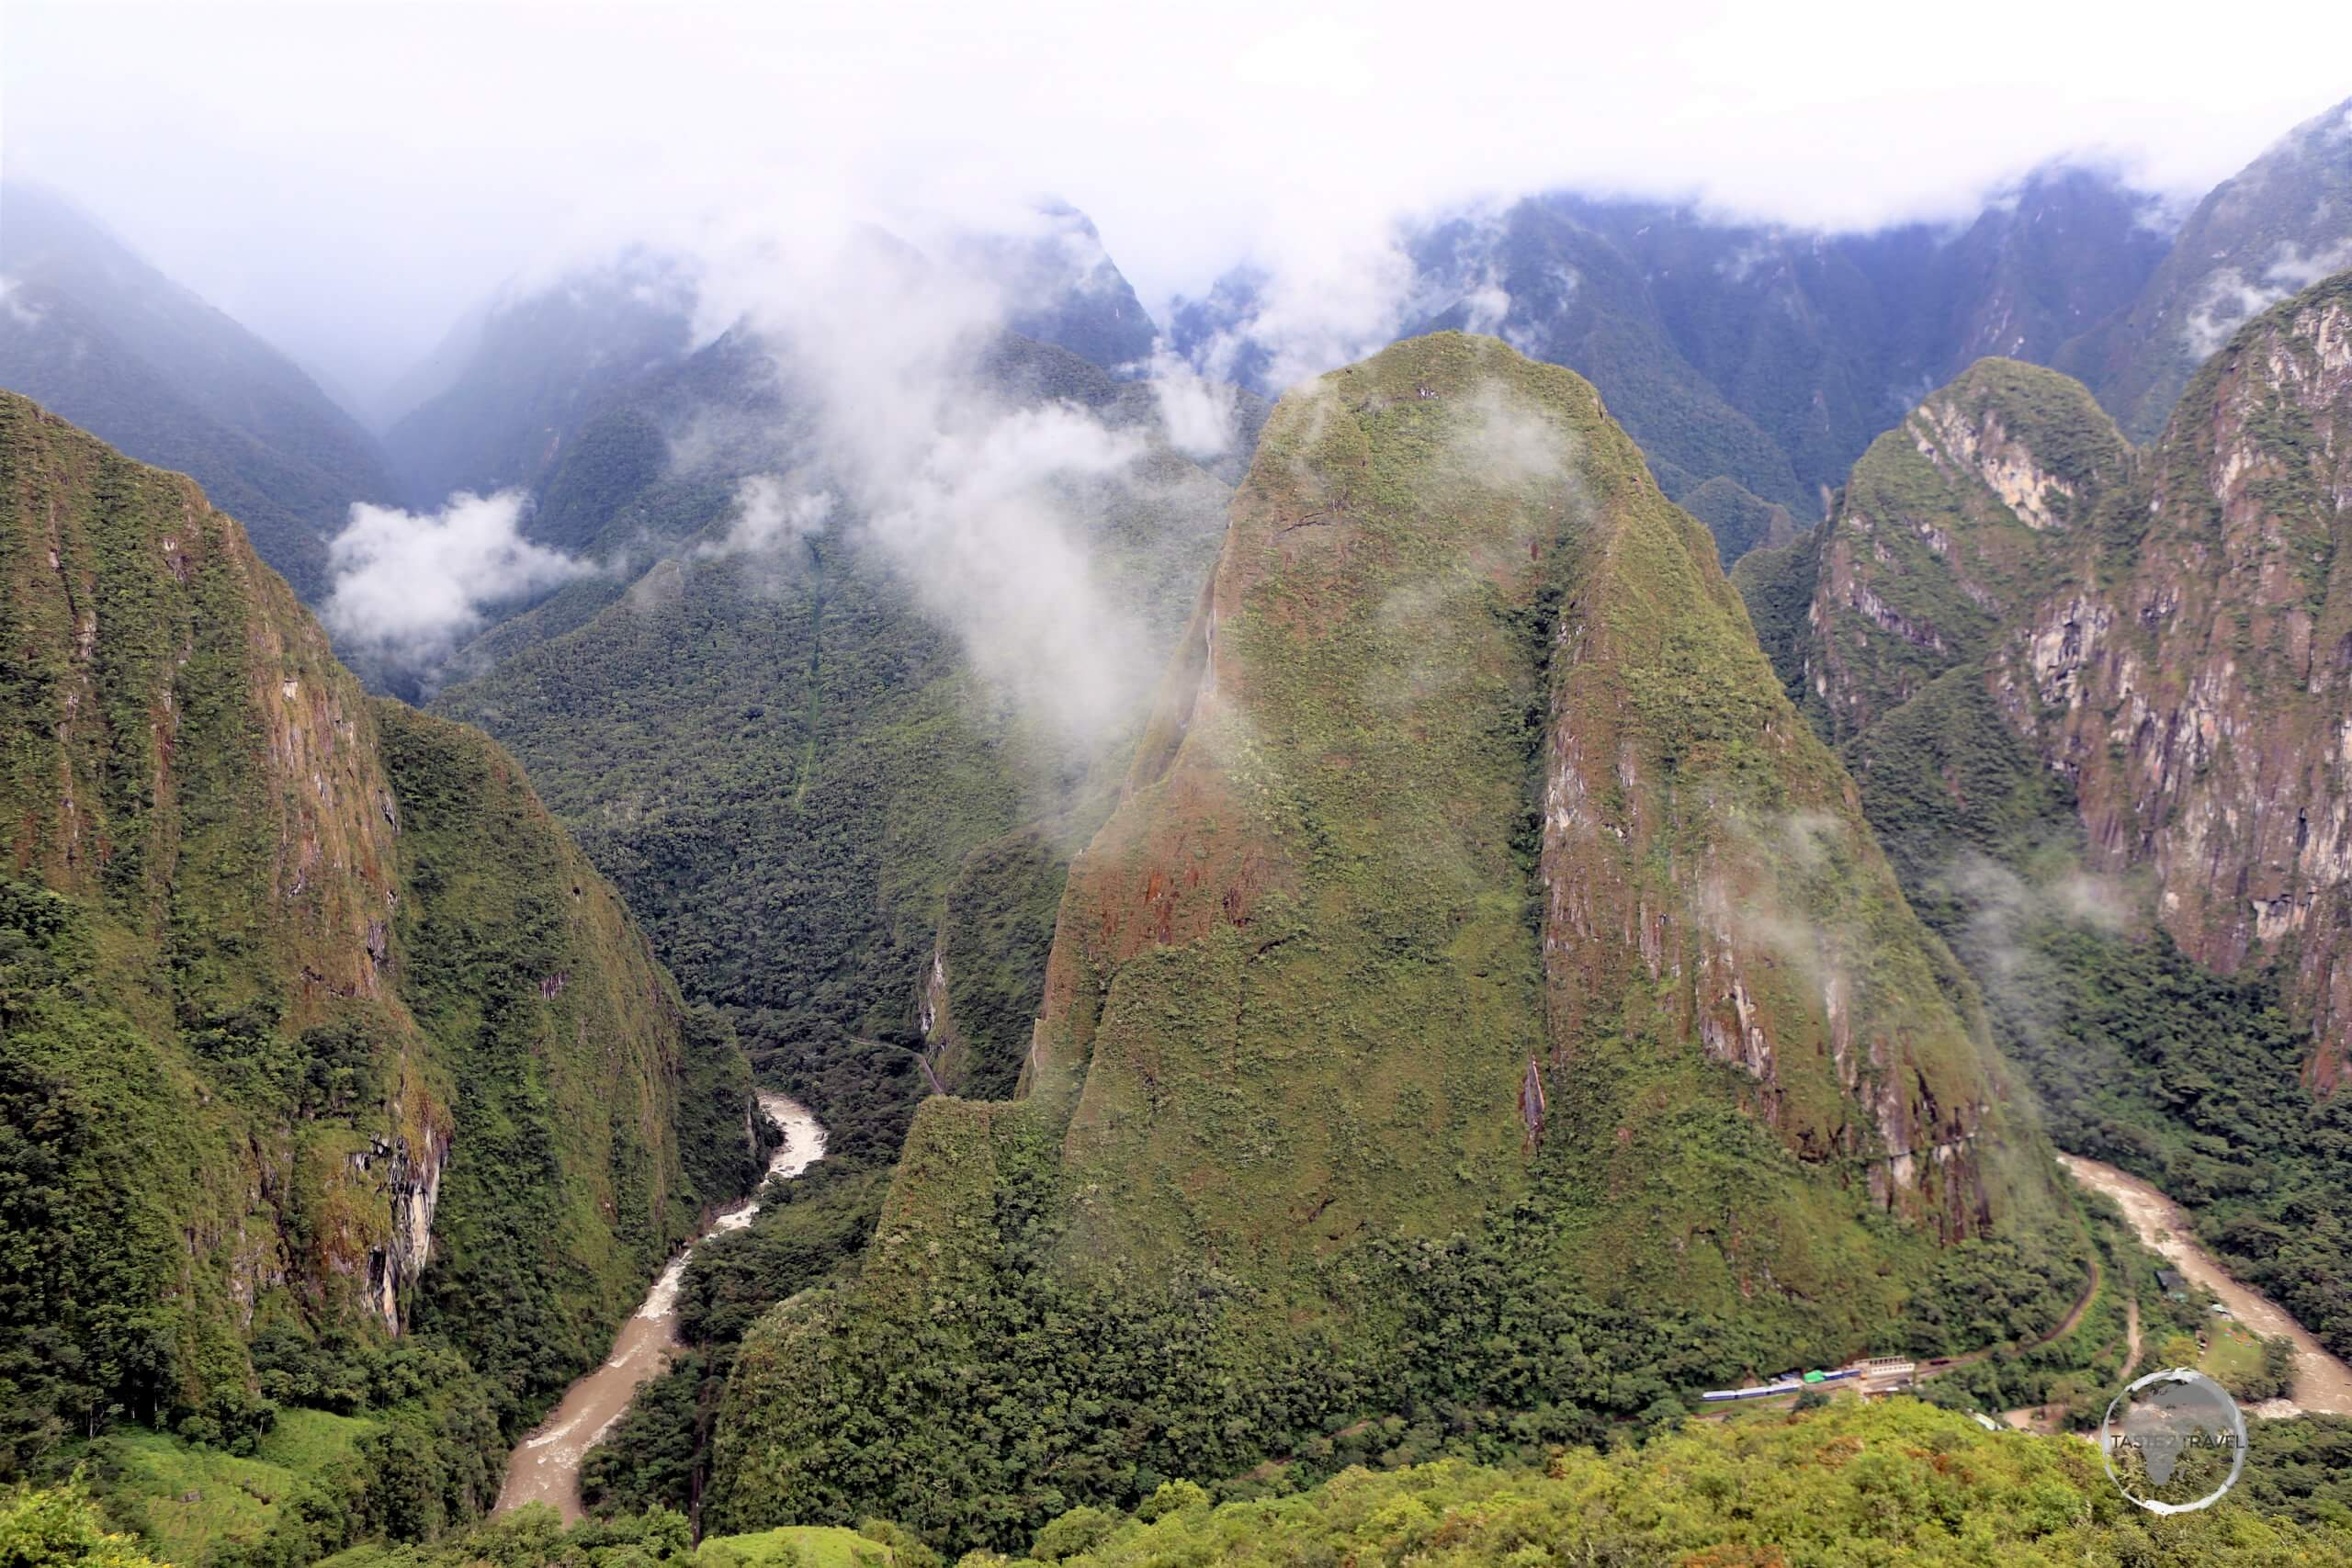 Machu Picchu is dramatically situated on a ridge, high above the Urubamba River and the Sacred Valley, 80 km (50 mi) northwest of Cusco, Peru.